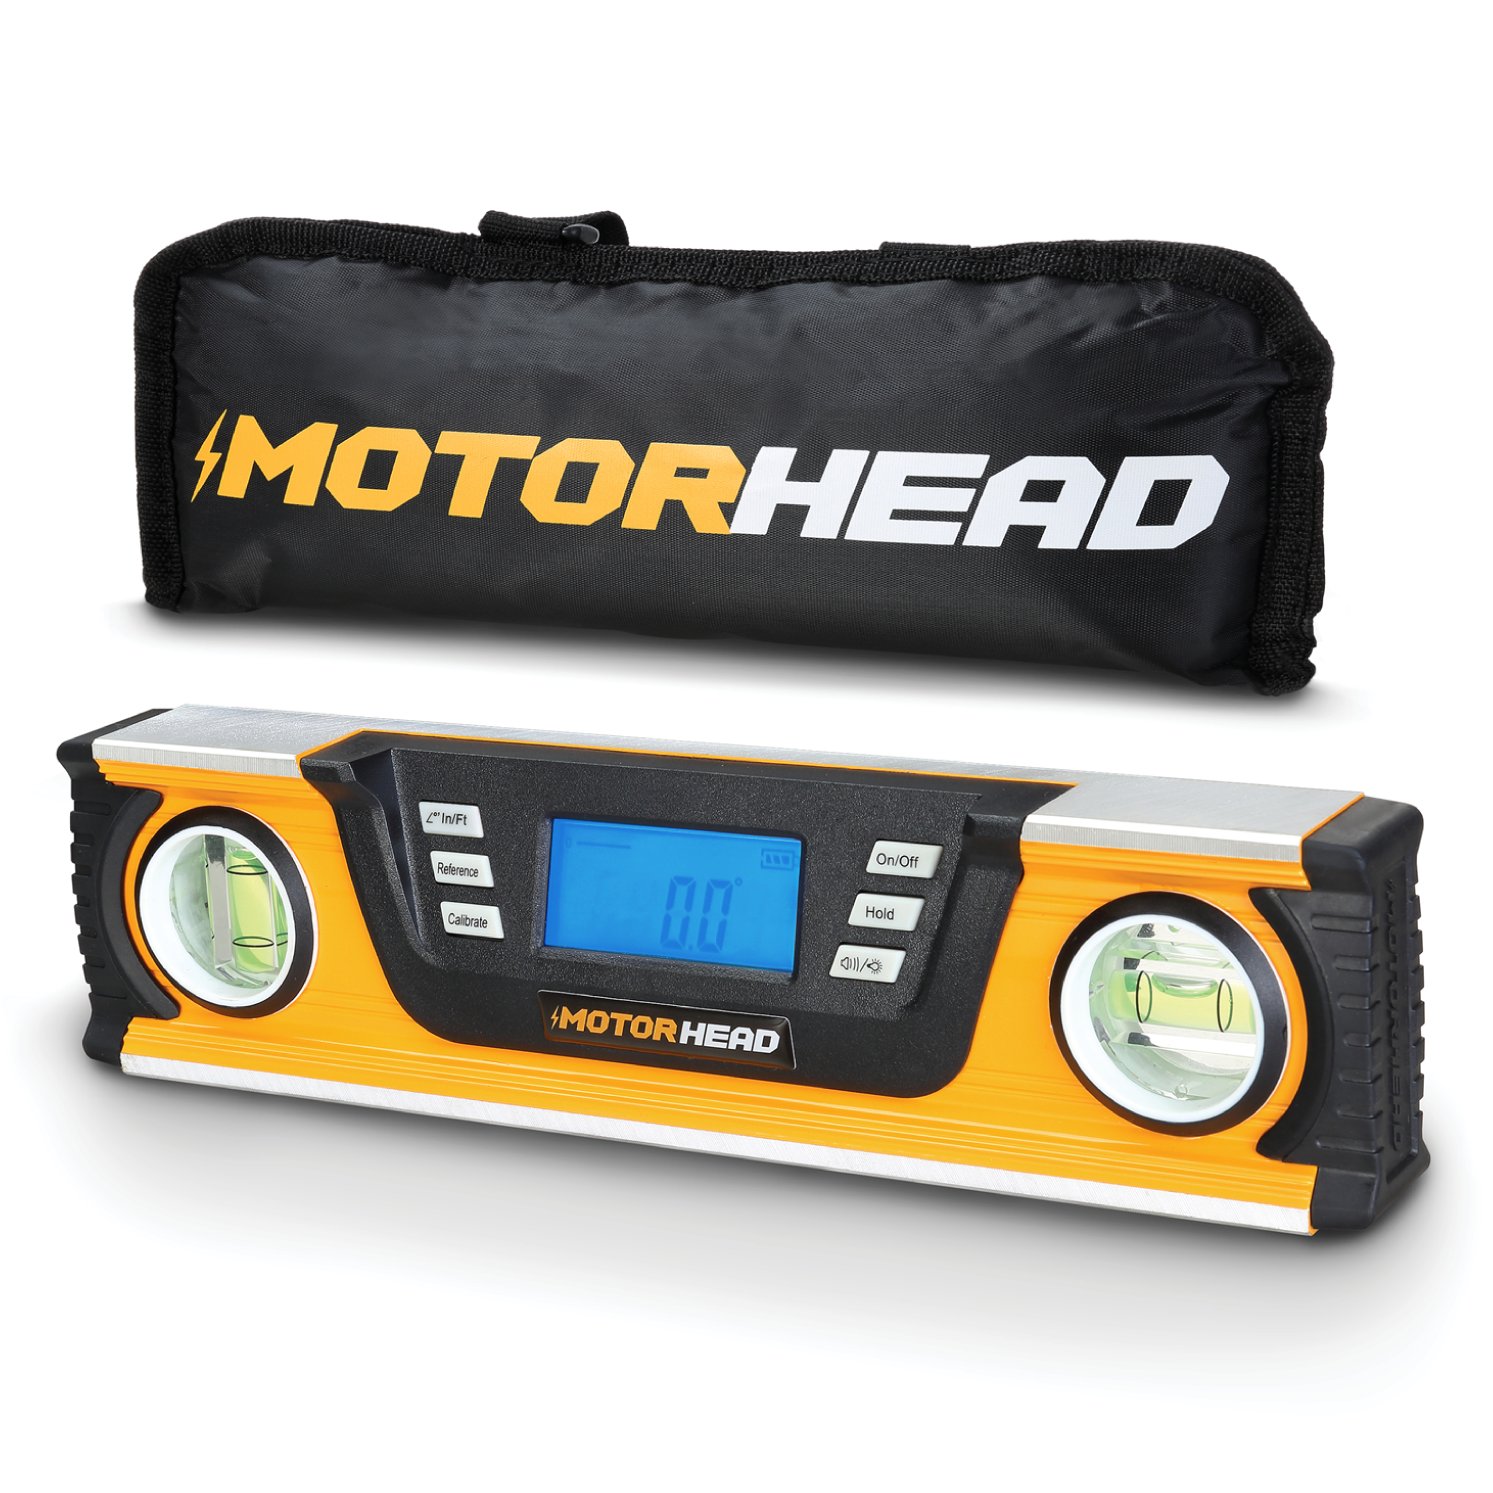 Smart Digital Torpedo Level-Motorhead & Steelhead Tools